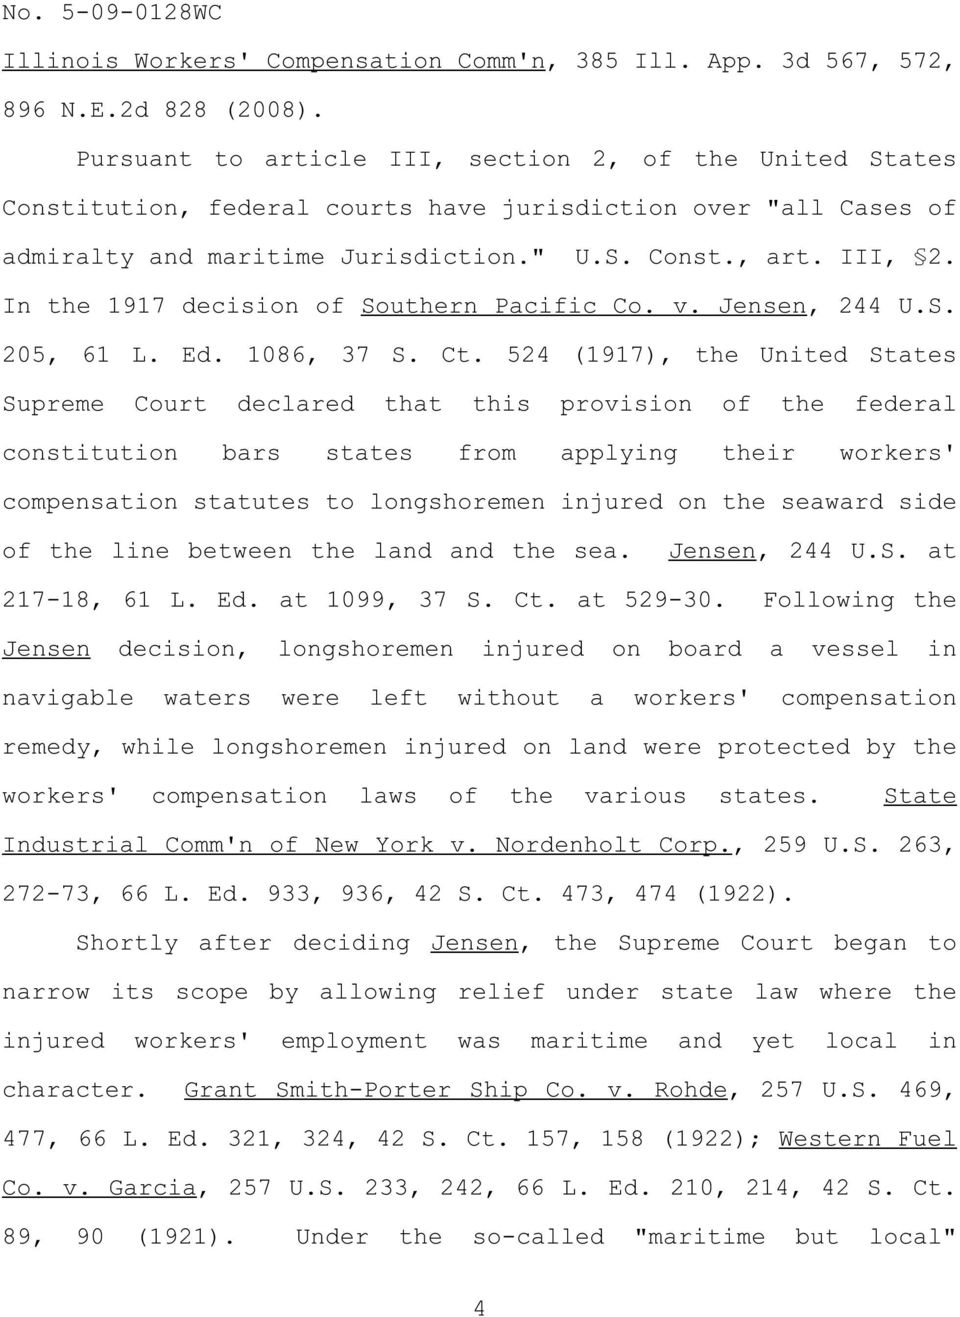 In the 1917 decision of Southern Pacific Co. v. Jensen, 244 U.S. 205, 61 L. Ed. 1086, 37 S. Ct.